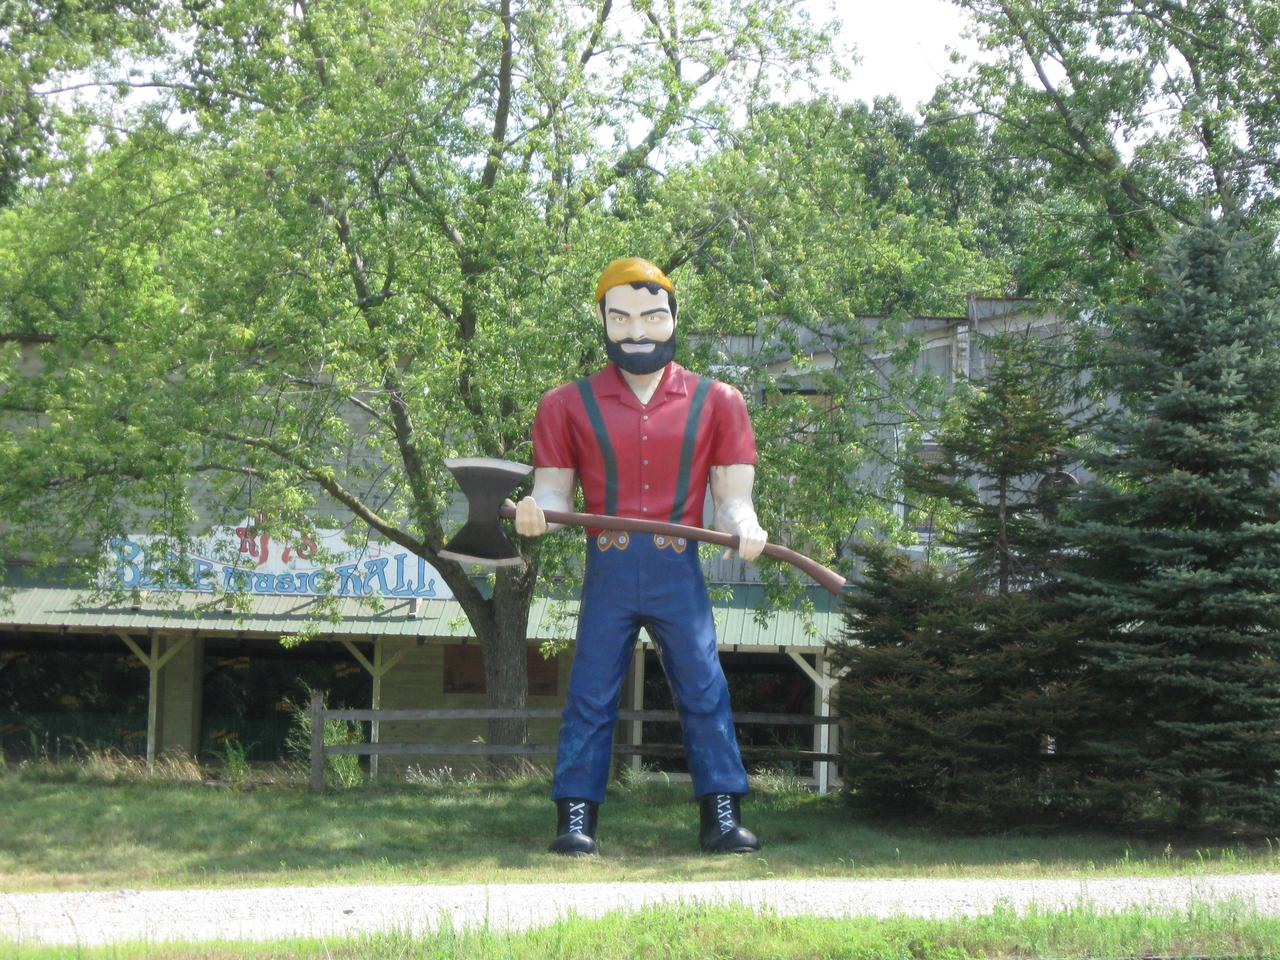 One of America's numerous repurposed Muffler Man statues, spotted by Gizmag staff near Ann Arbor, Michigan